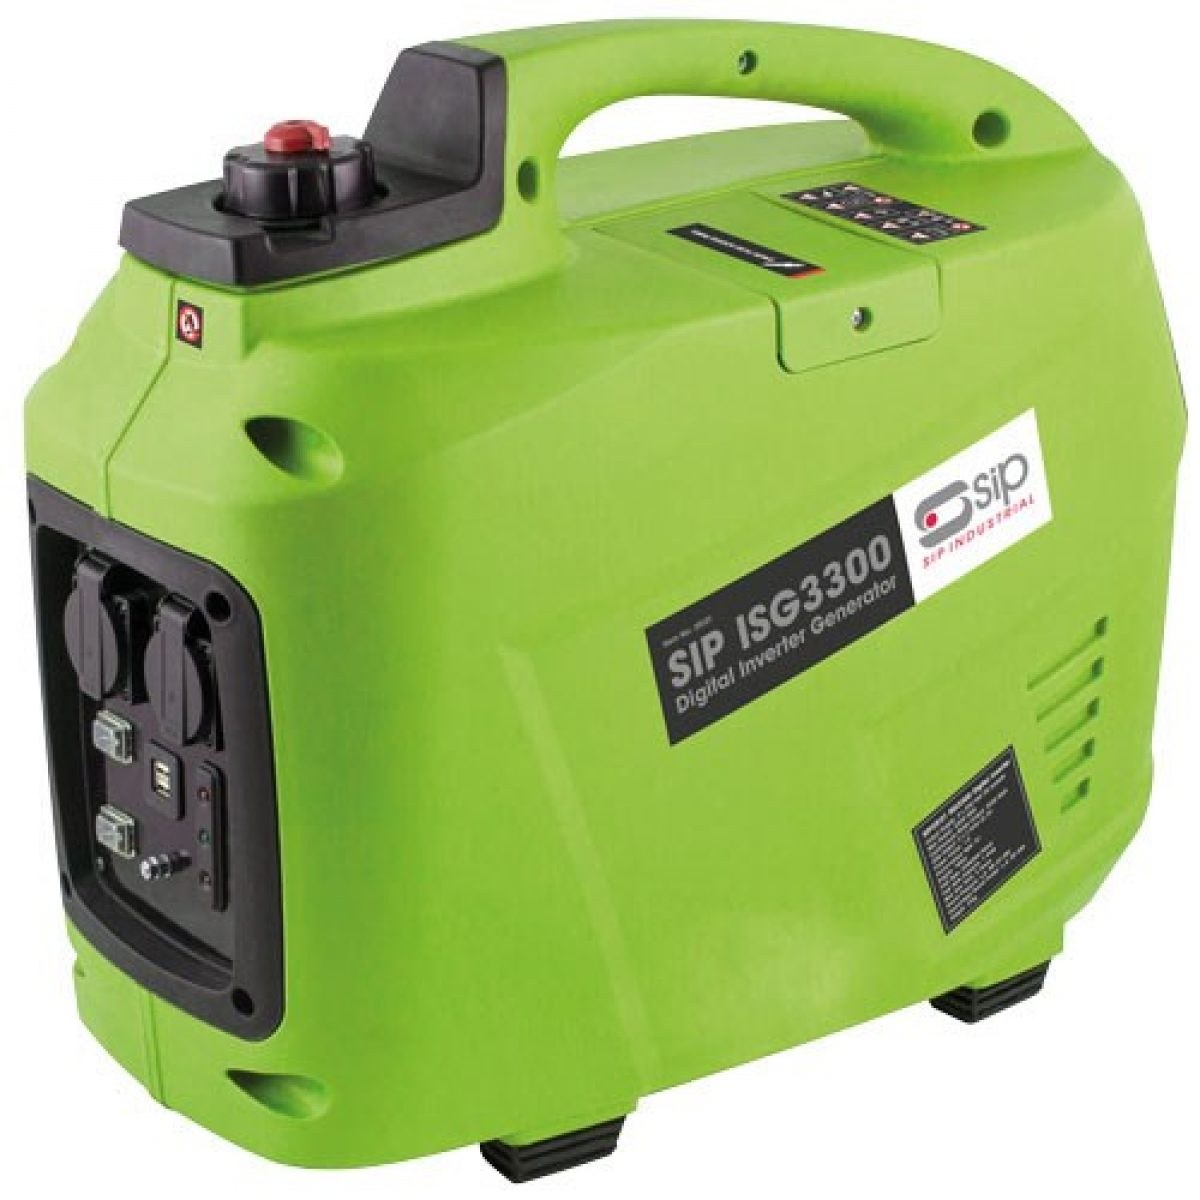 SIP ISG3300 Digital Inverter Generator 25121   7ltr tank with 5hrs approx. maximum runtime   toolforce.ie